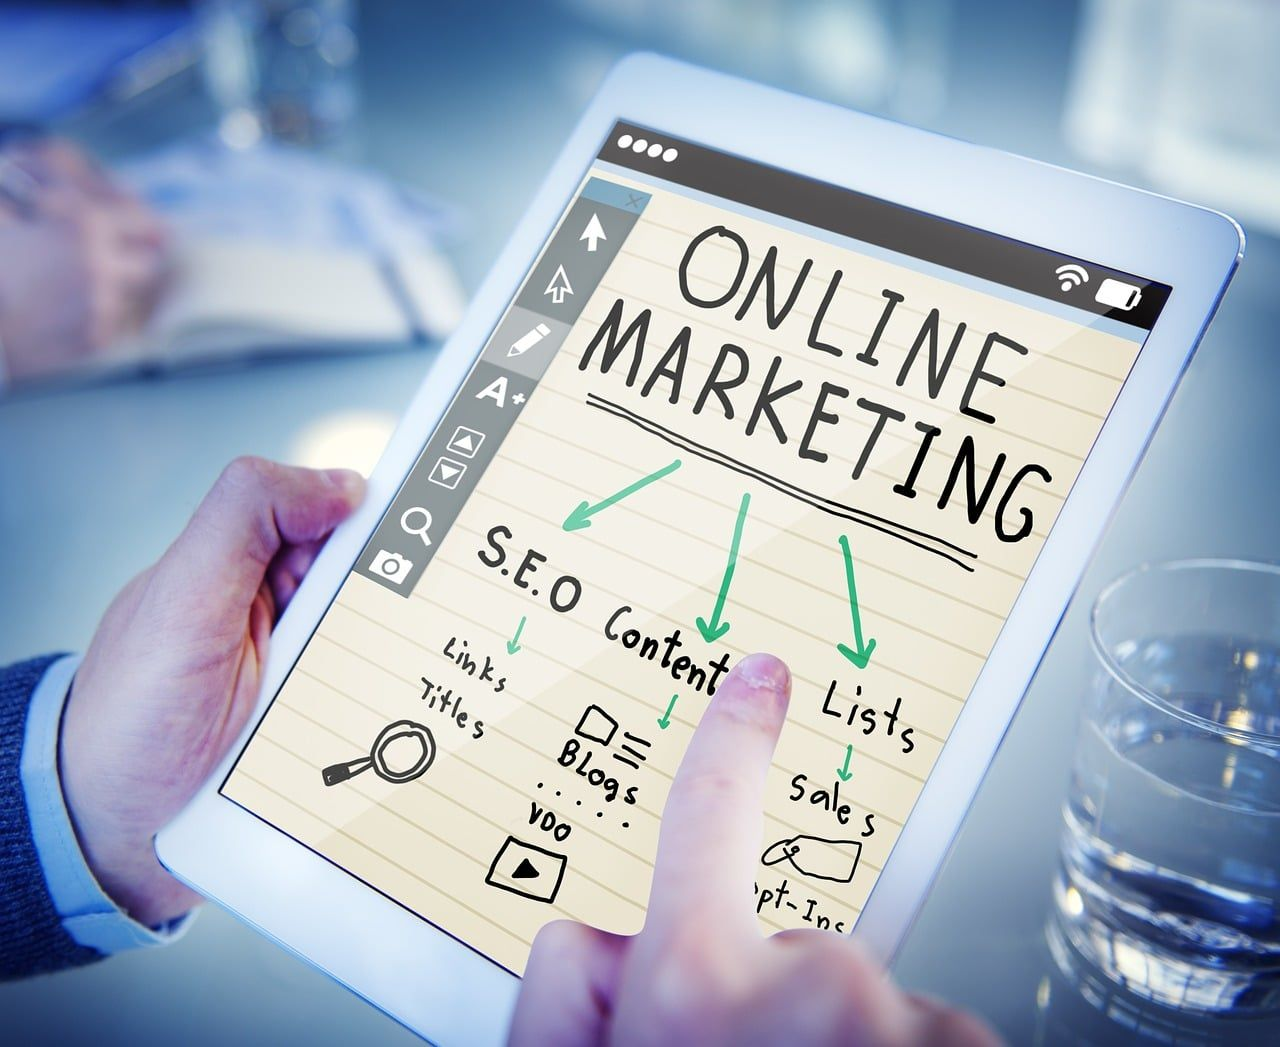 ¿Cuáles son las funciones del marketing digital?